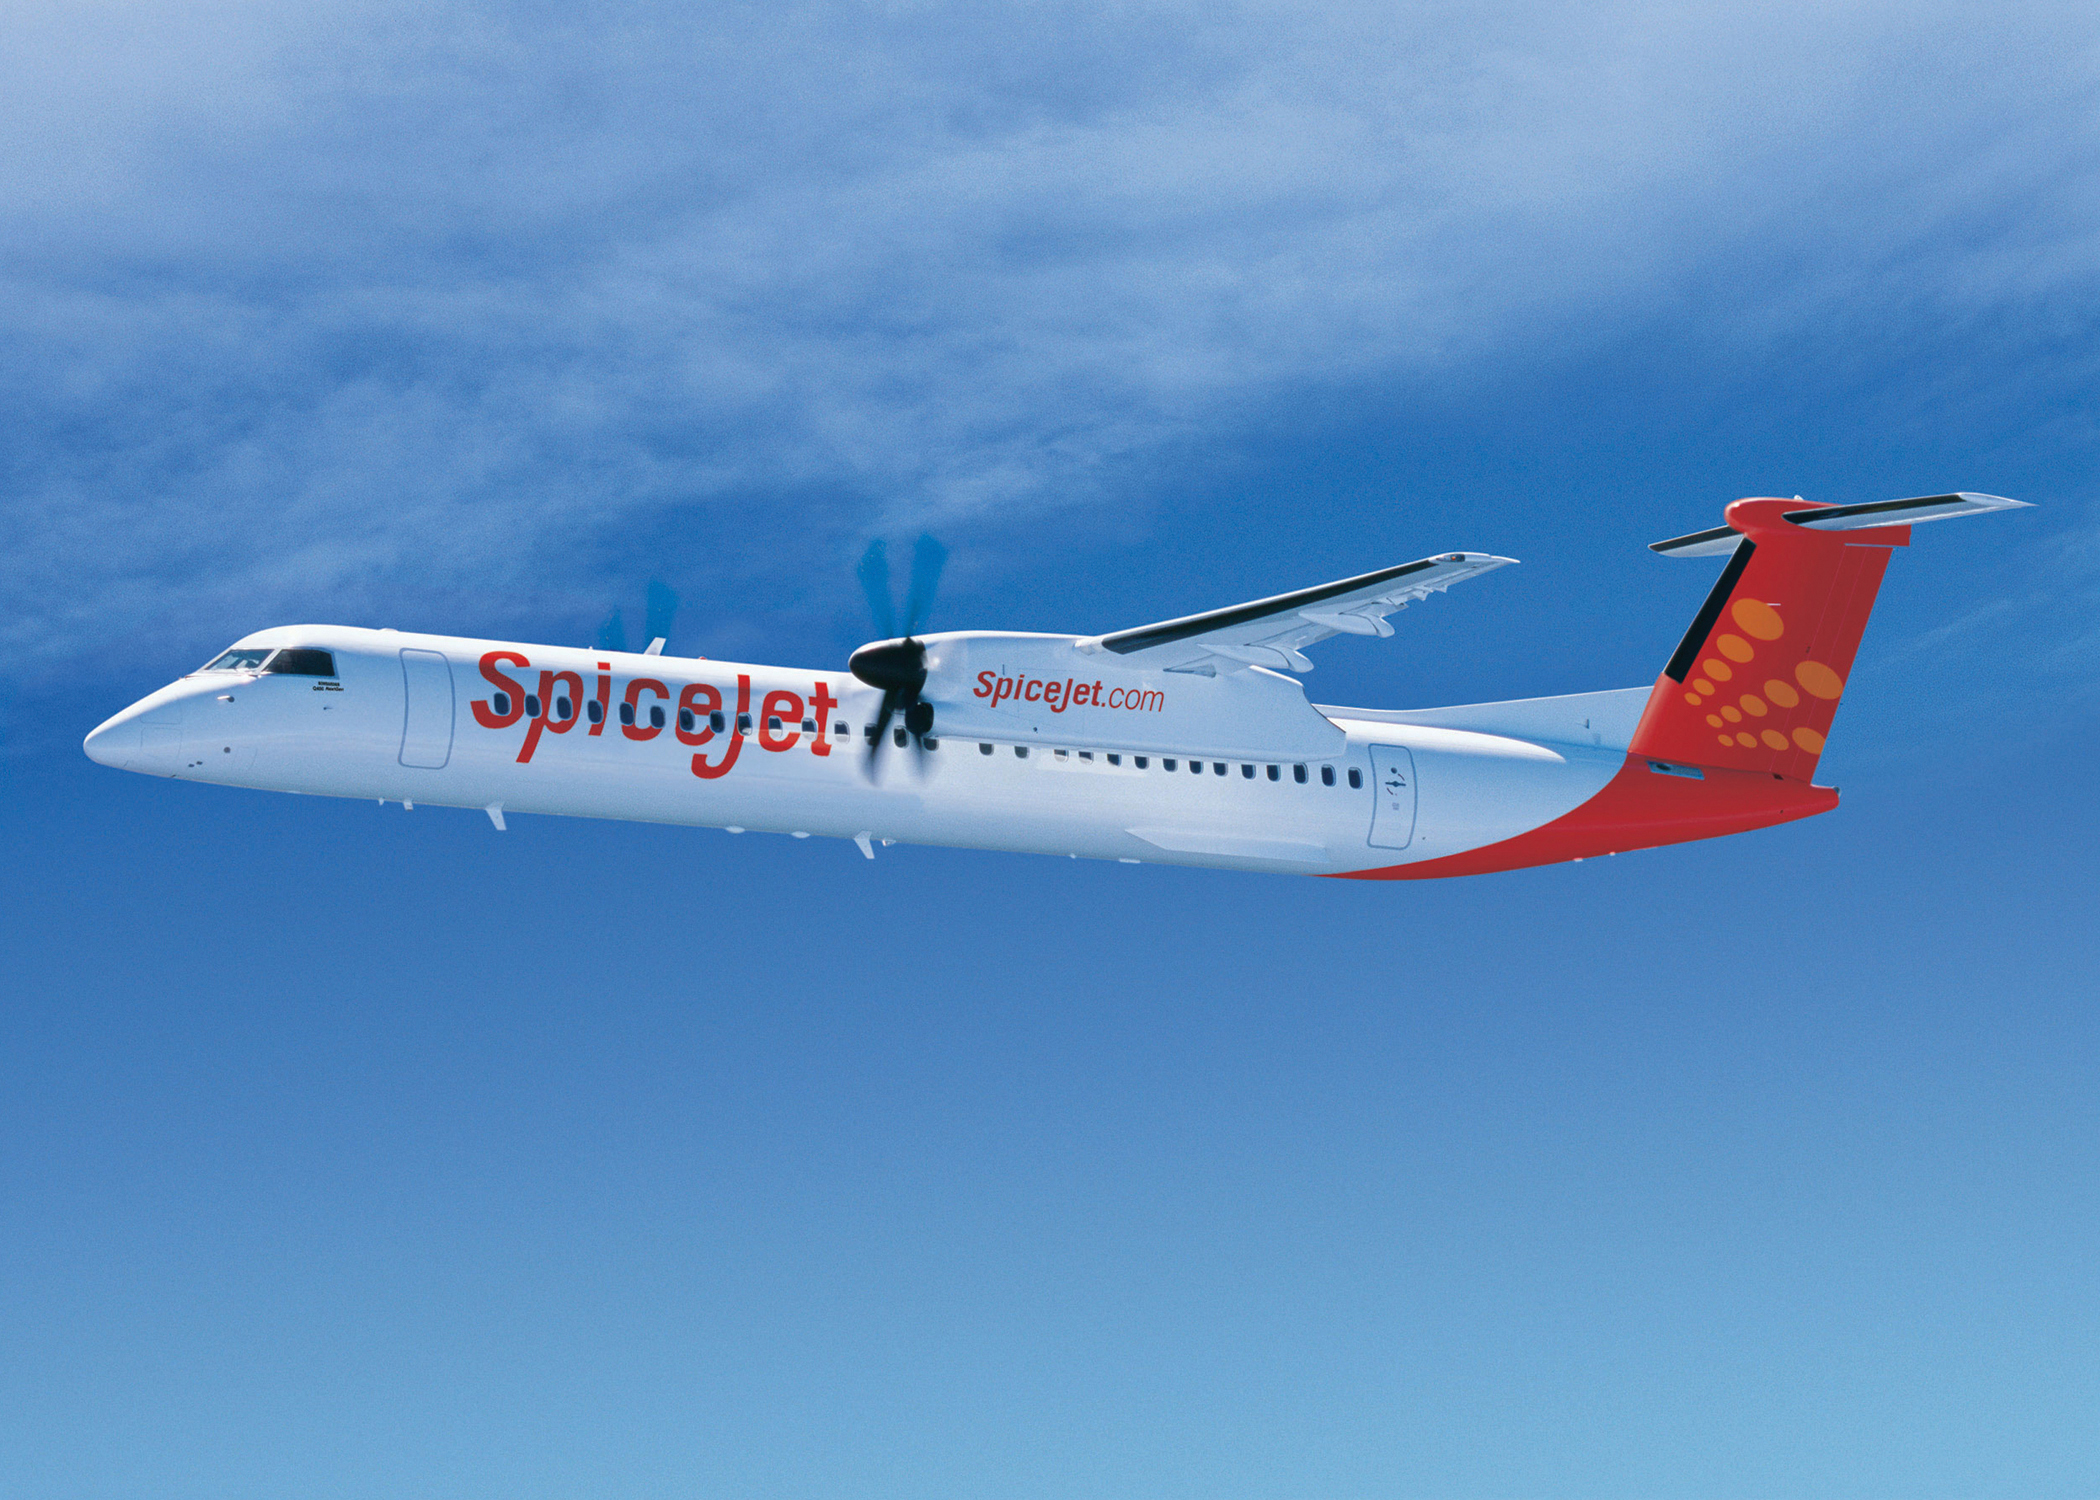 Bombardier's Q400 in SpiceJet livery.